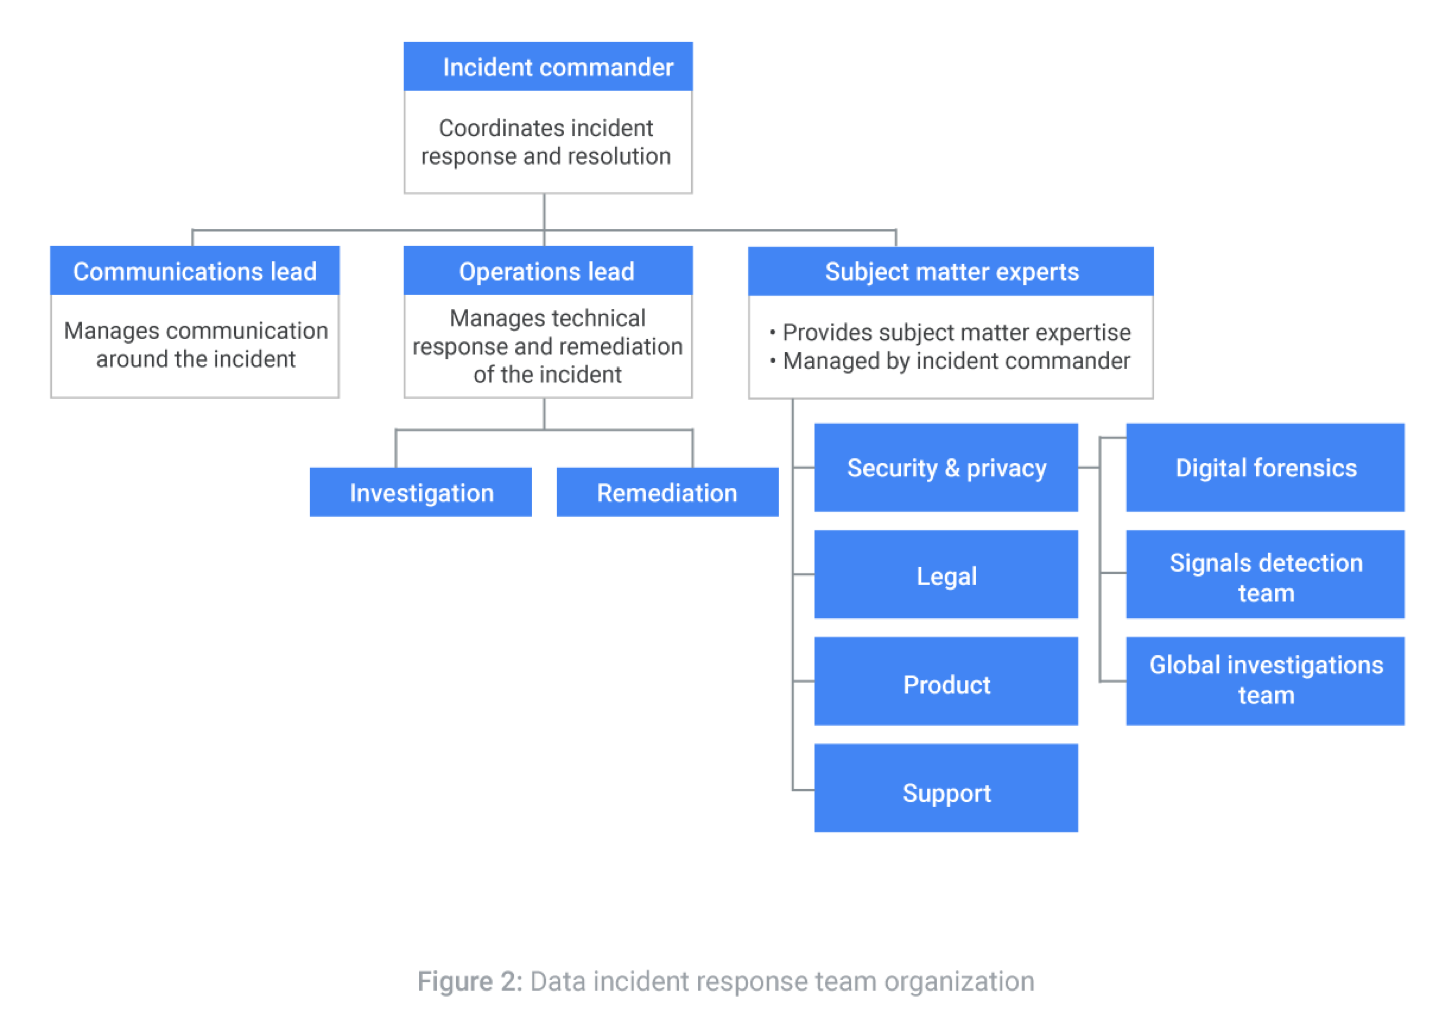 Data incident response team organization